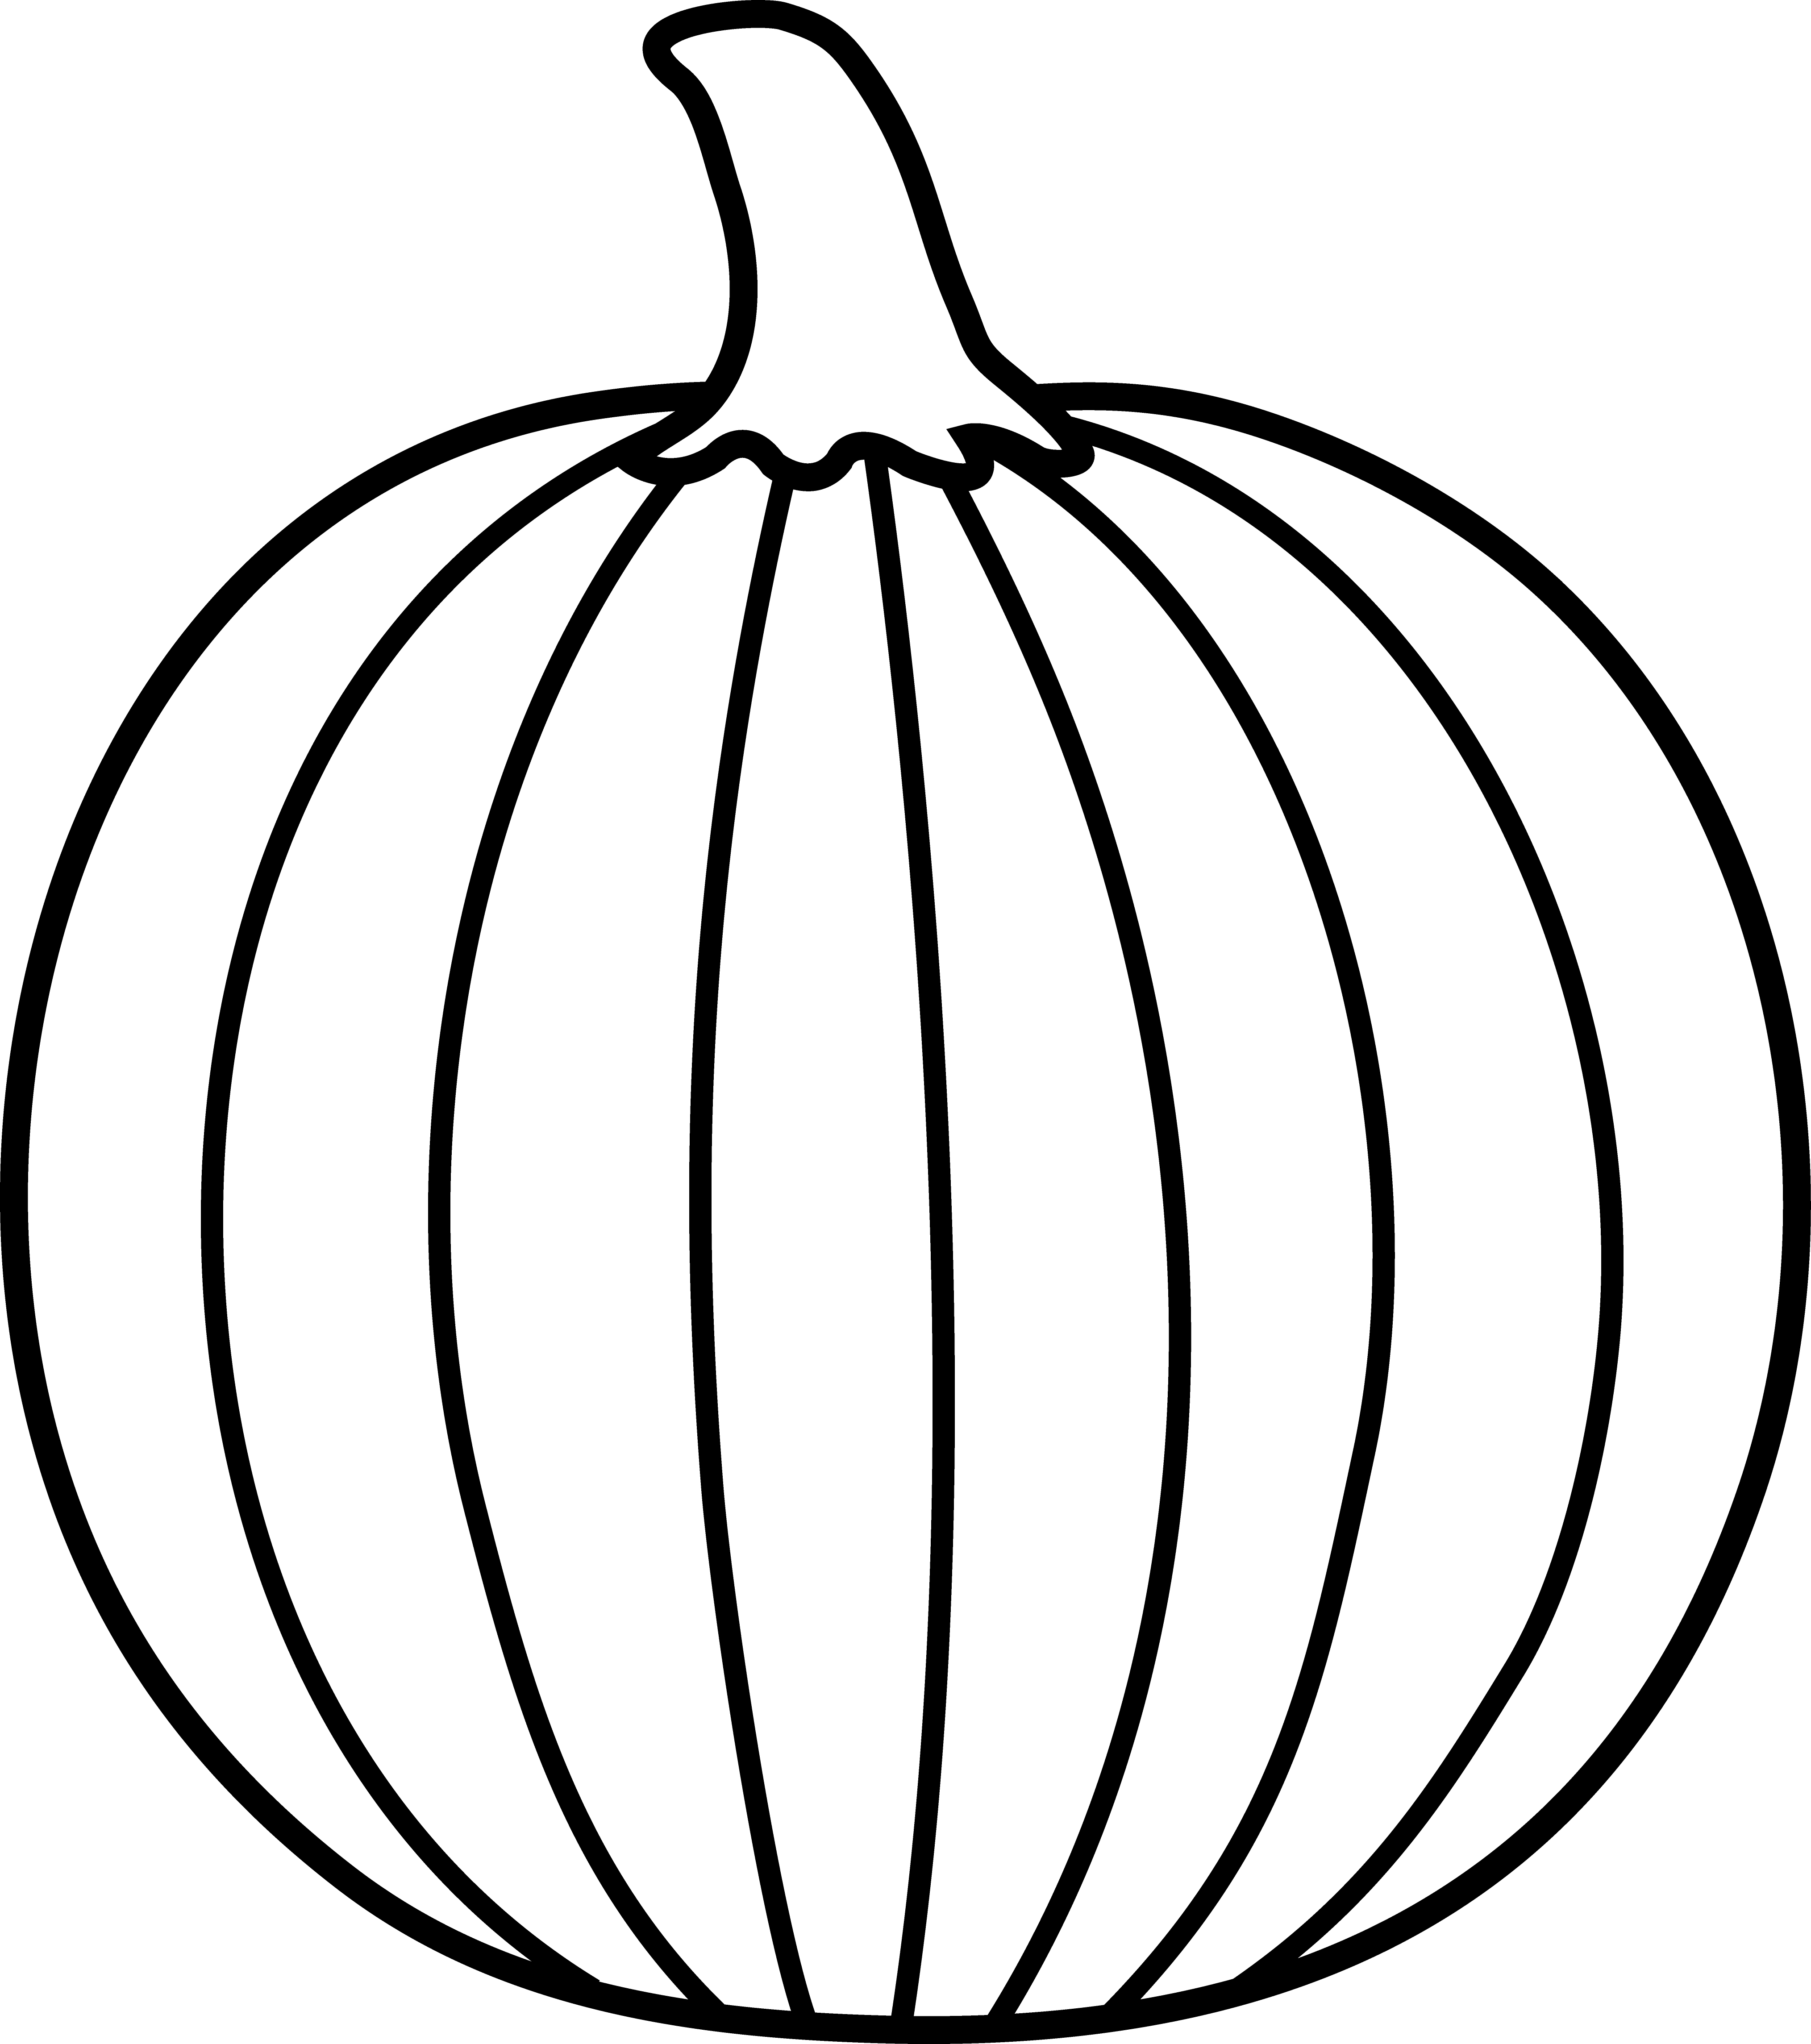 png black and white Outline printable panda free. Chalk clipart pumpkin.